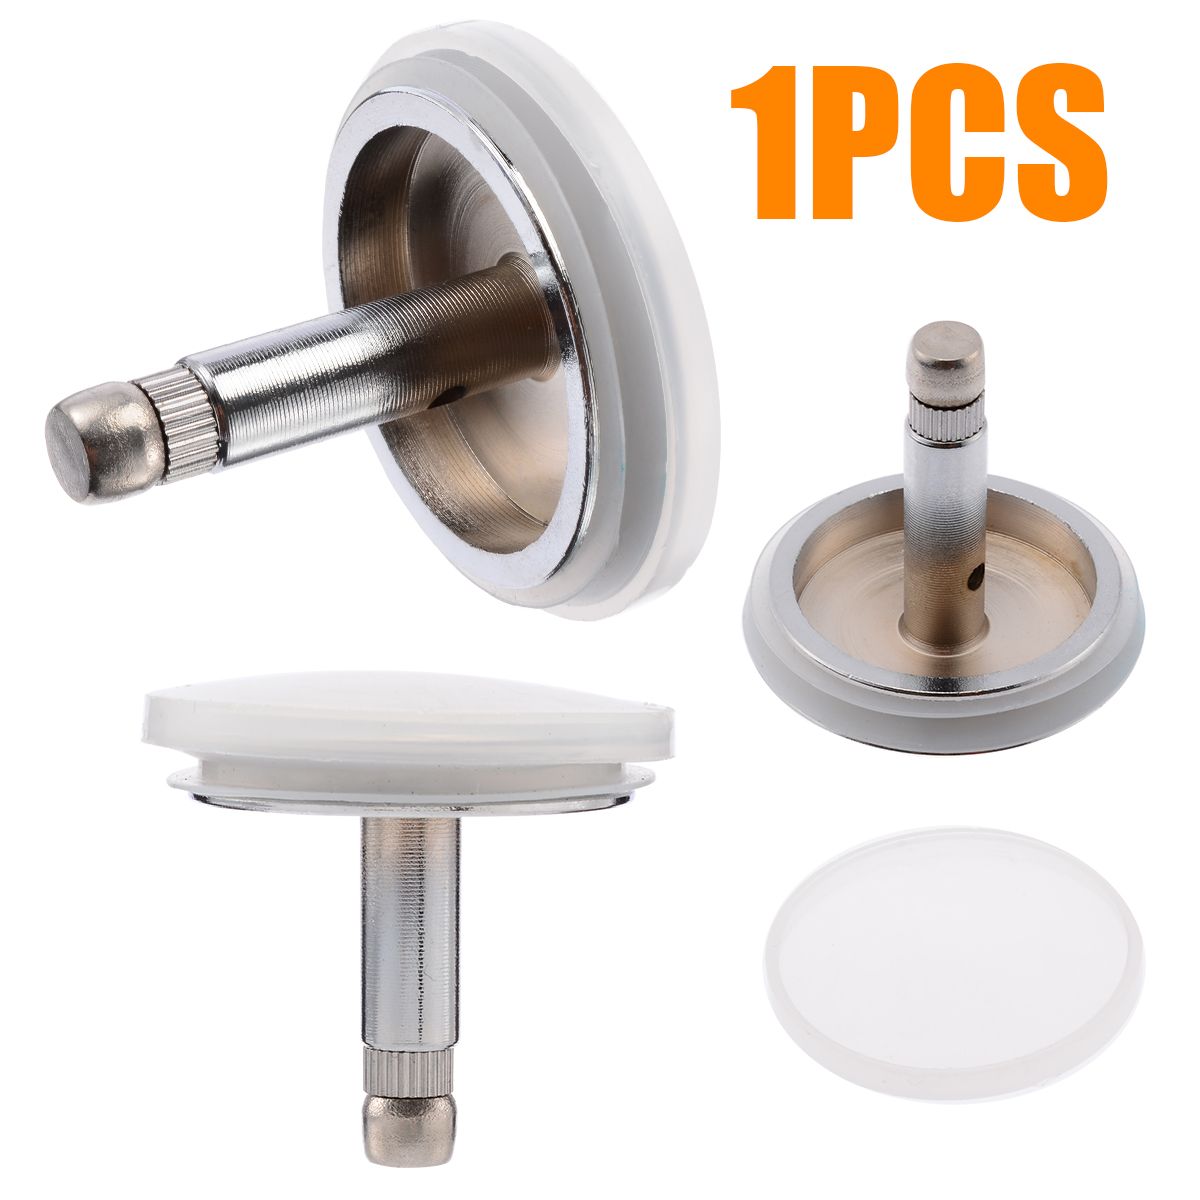 Stainless Drain Bathtub Basin Drain Stopper Waste Plug Filter Kitchen Sinks Drains Bathroom Sinks Faucets Accessories Silver